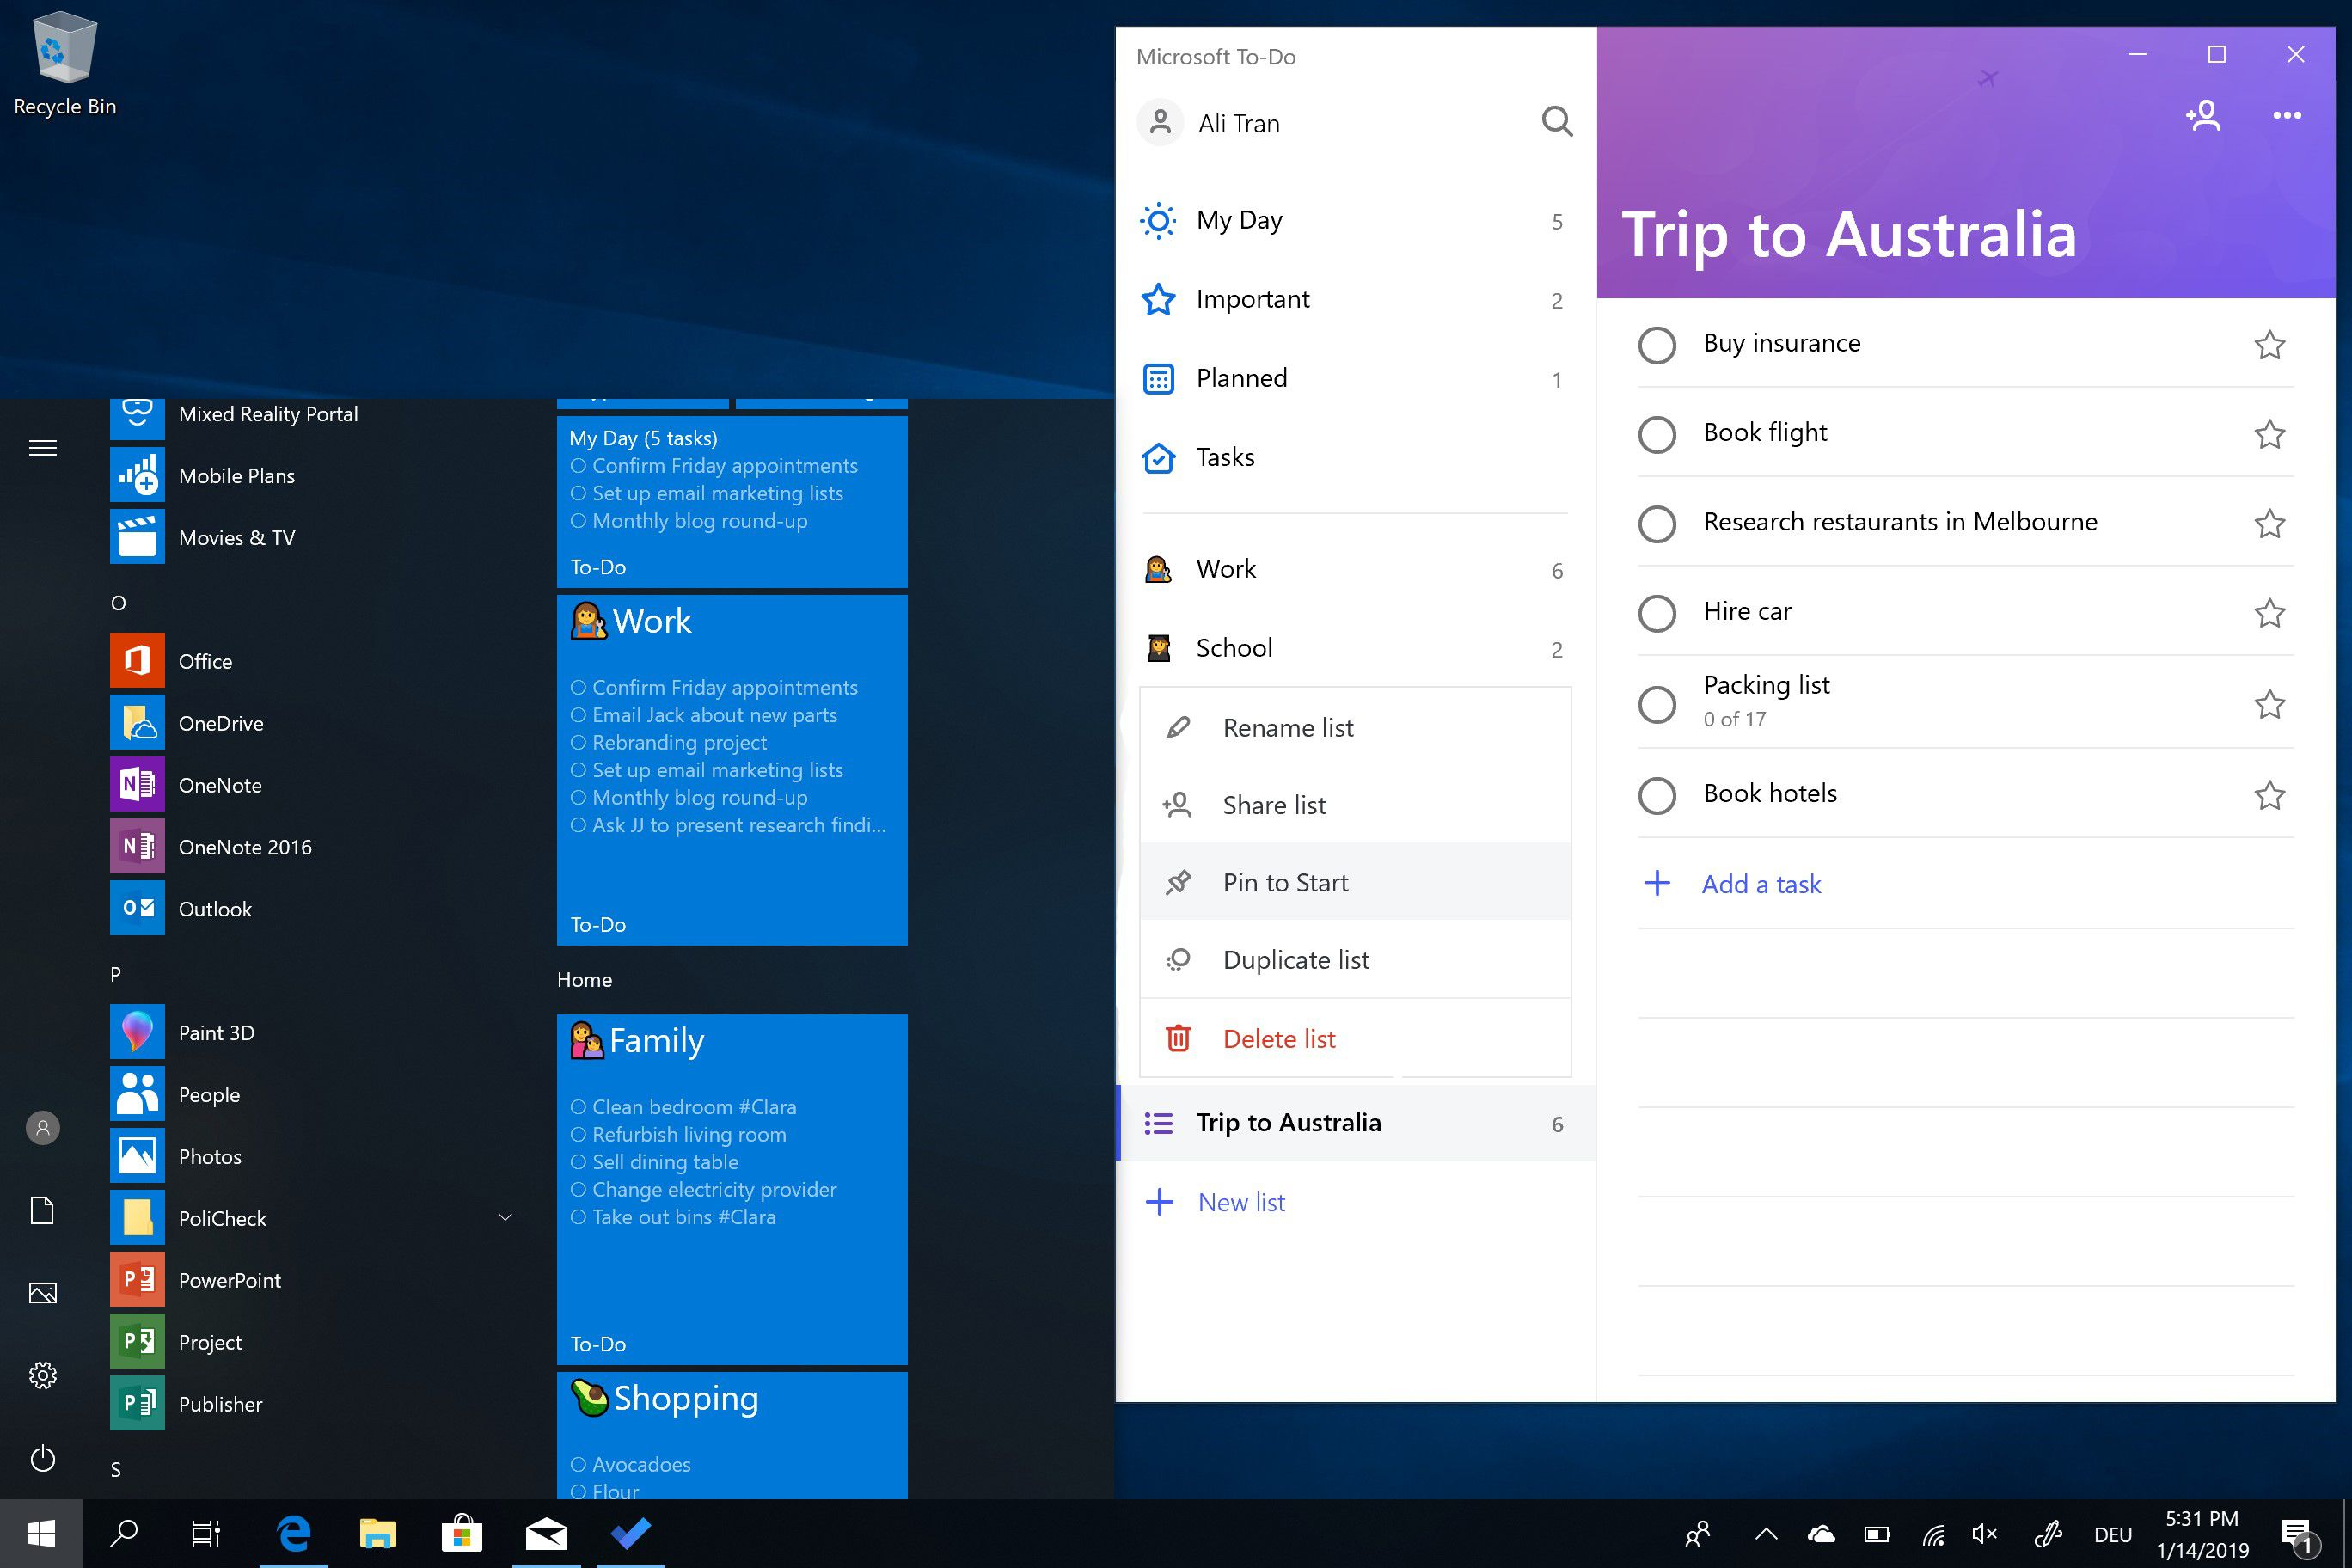 Microsoft To-Do new productivity features for January